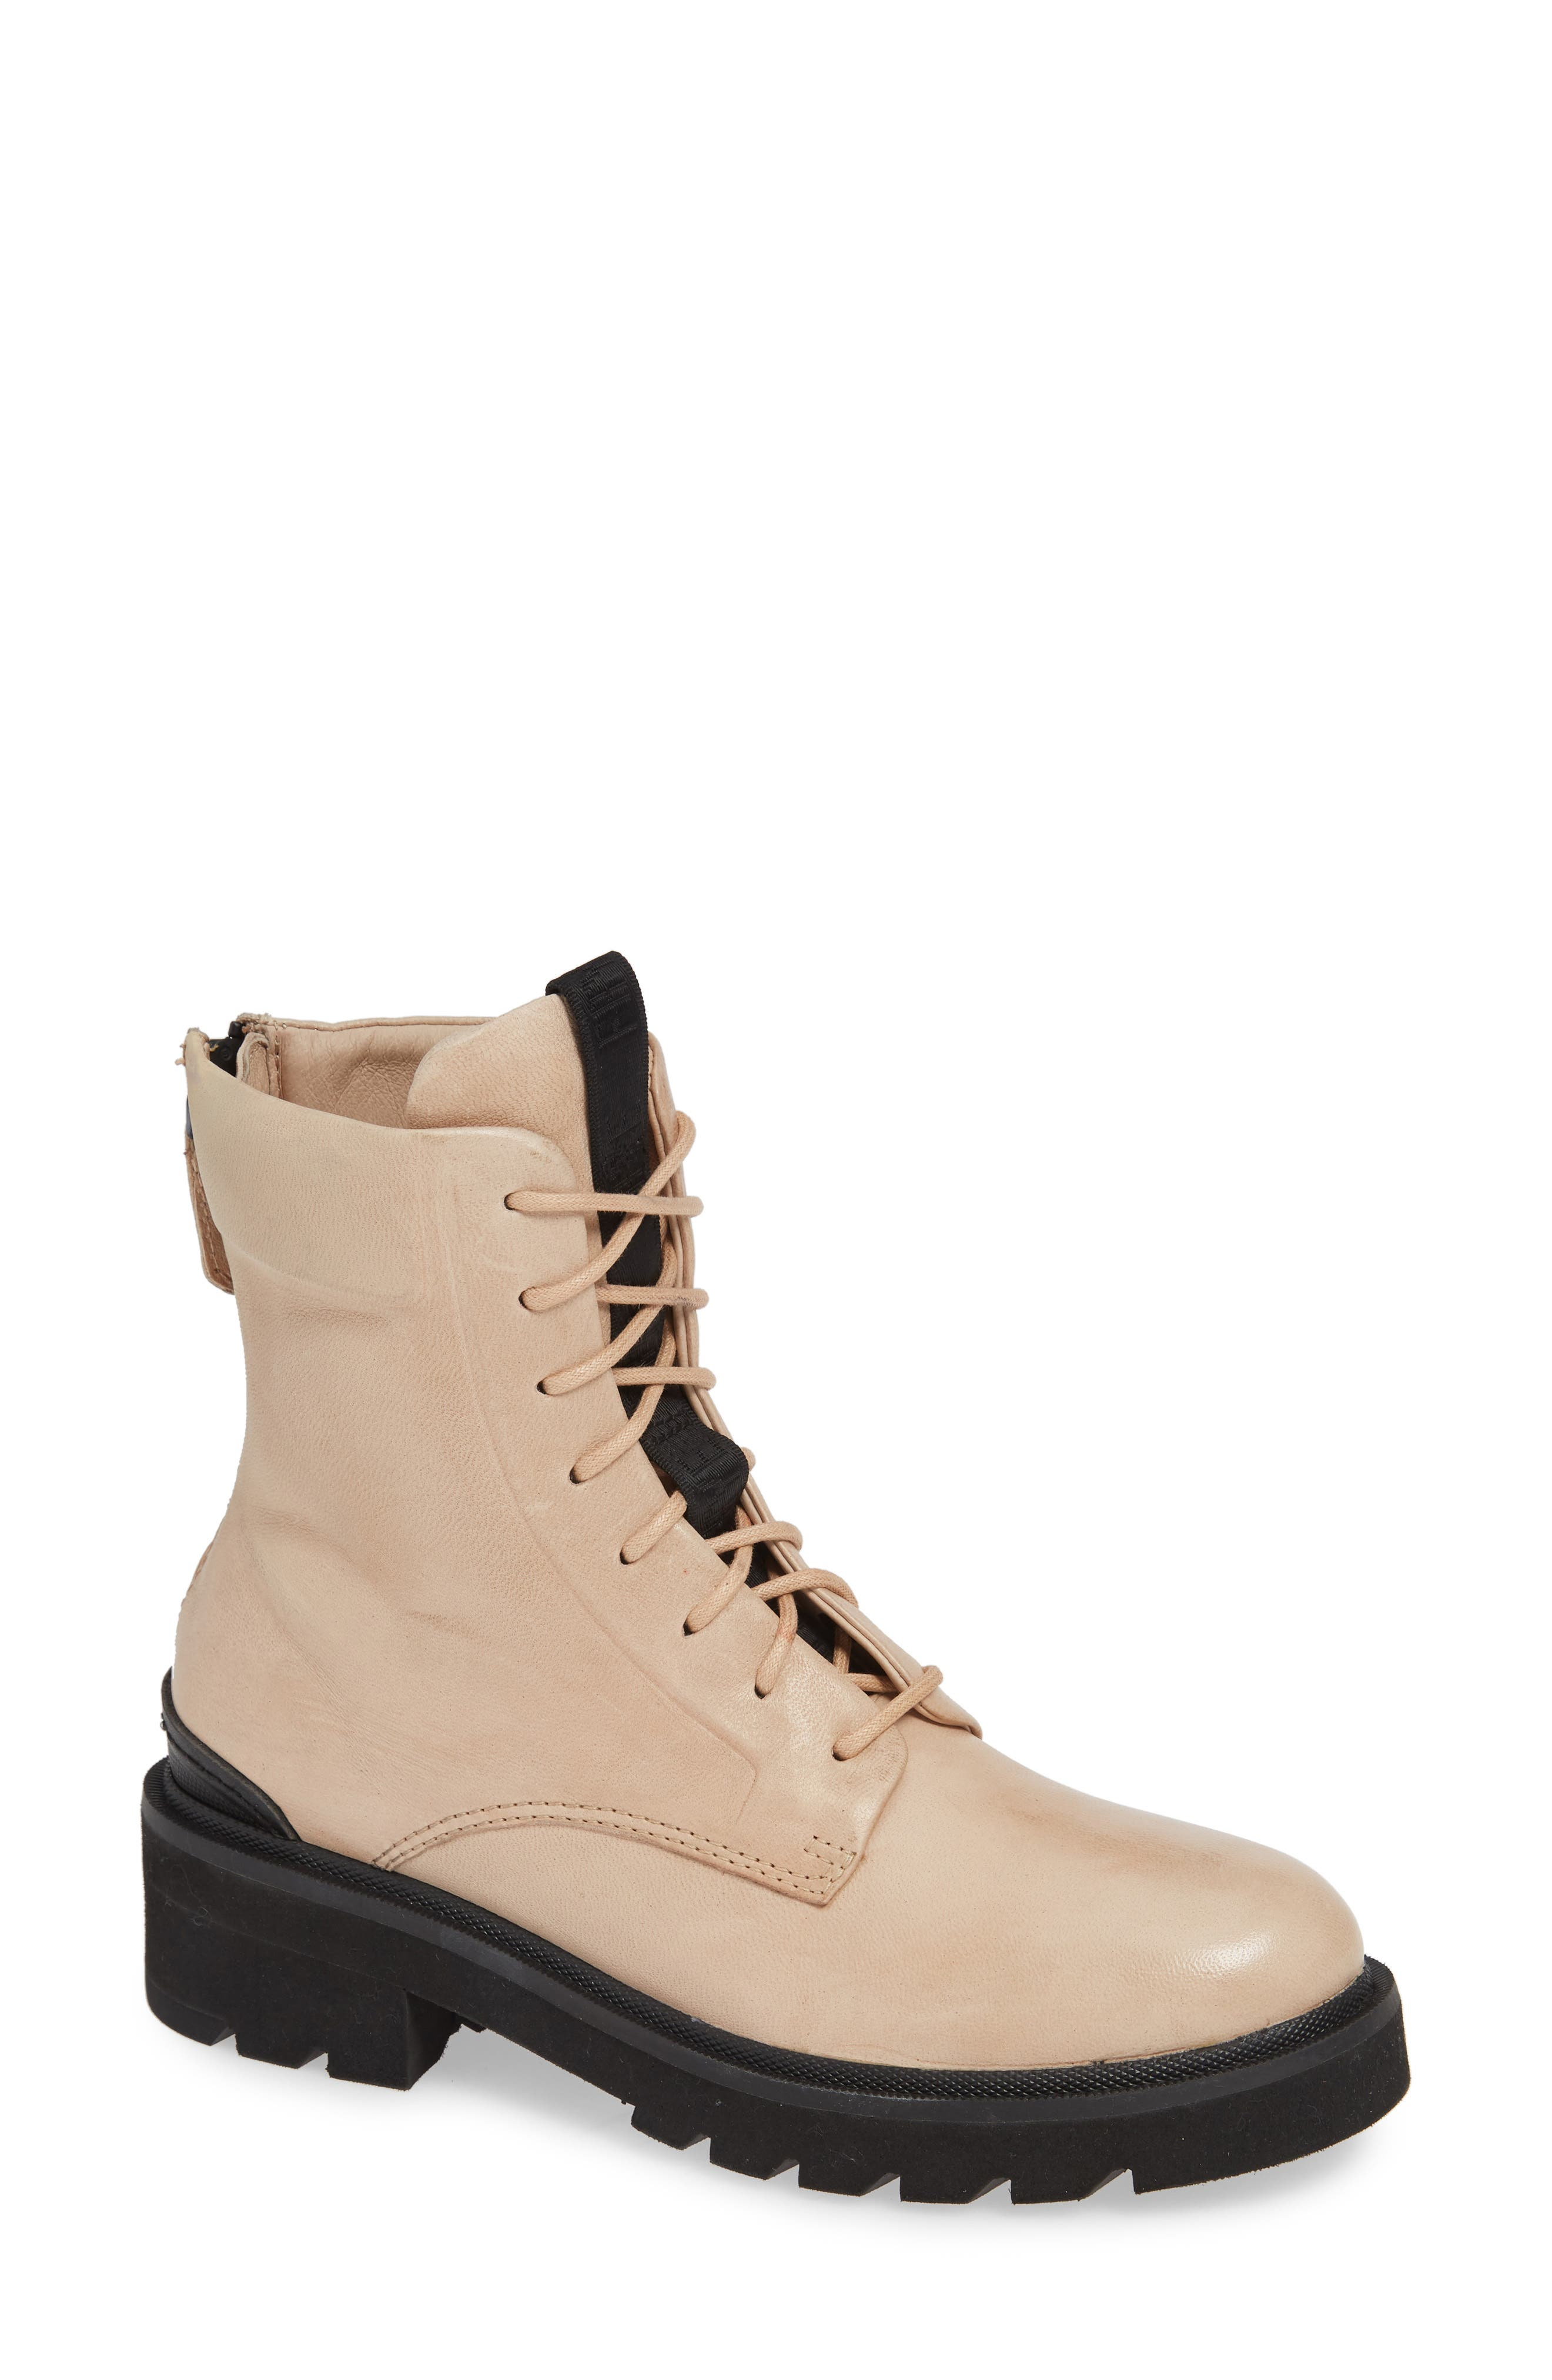 FRYE Allison Combat Boot, Main, color, CREAM LEATHER